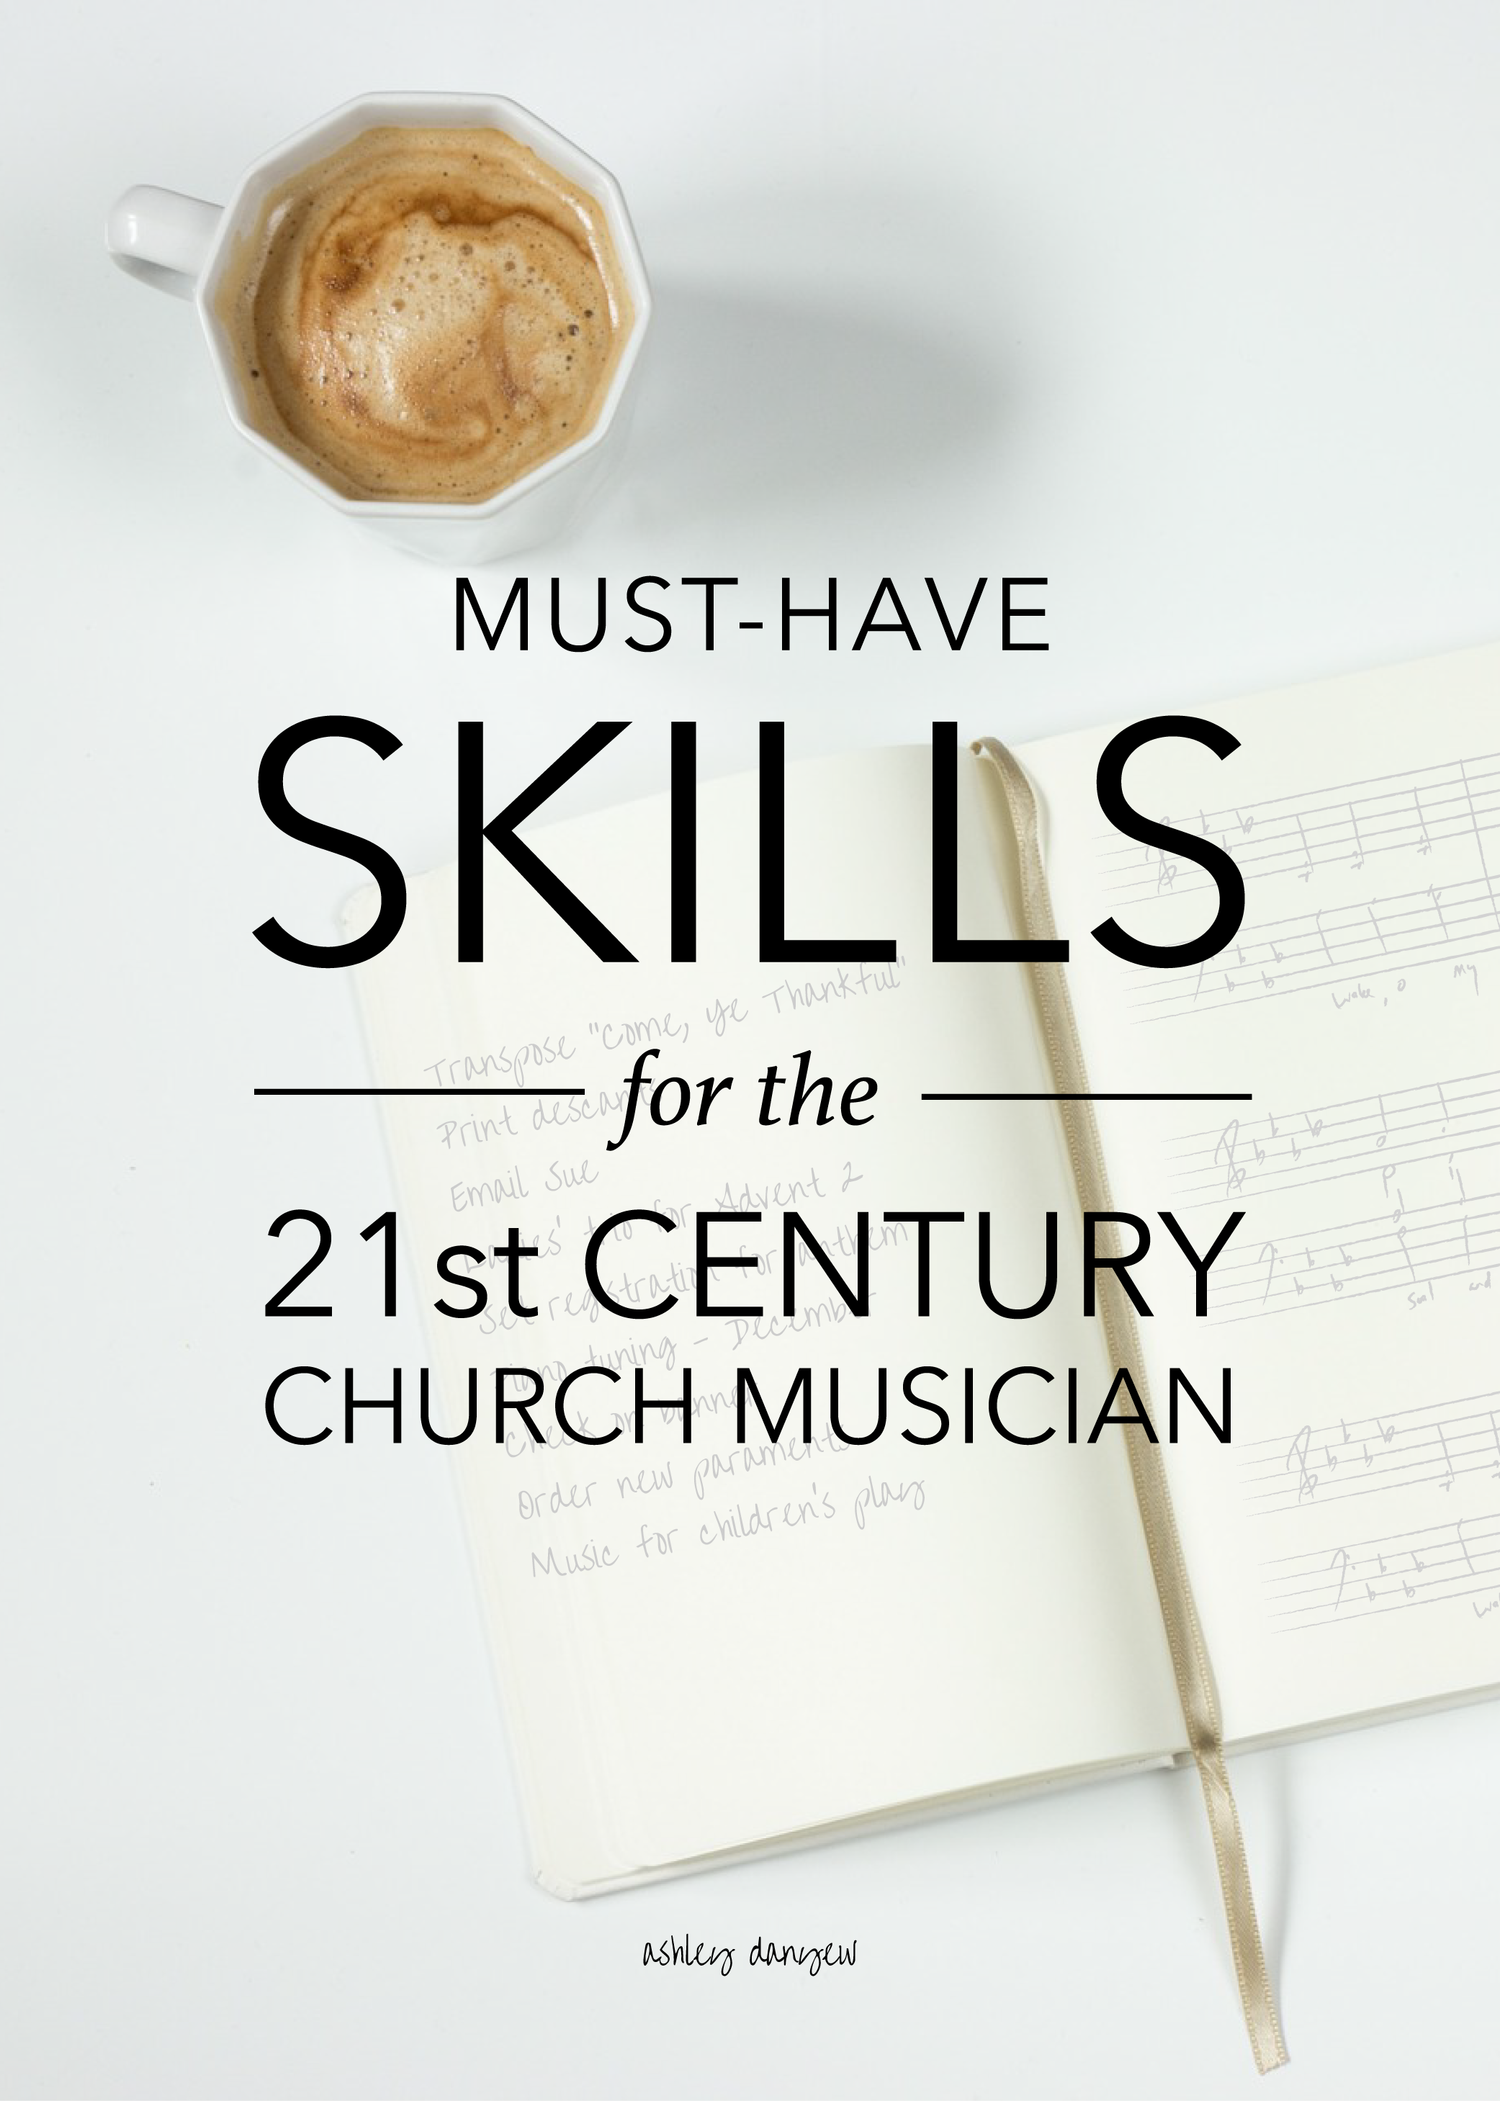 Must-Have Skills for the 21st Century Church Musician